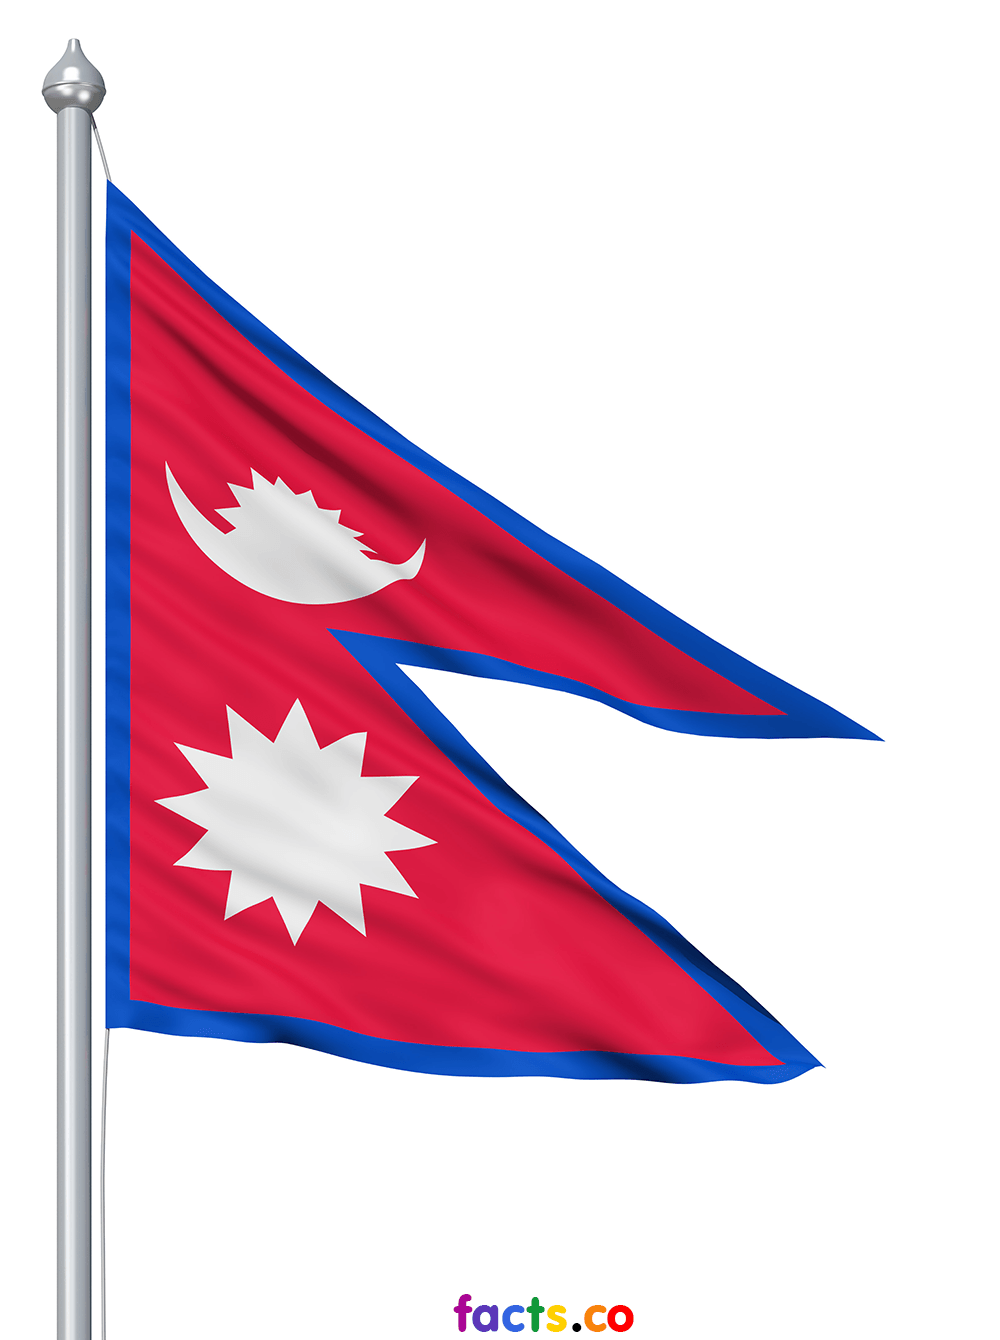 Nepal Flag (UN) Lady Liberty Flag & Flagpole – AUSTIN, TEXAS